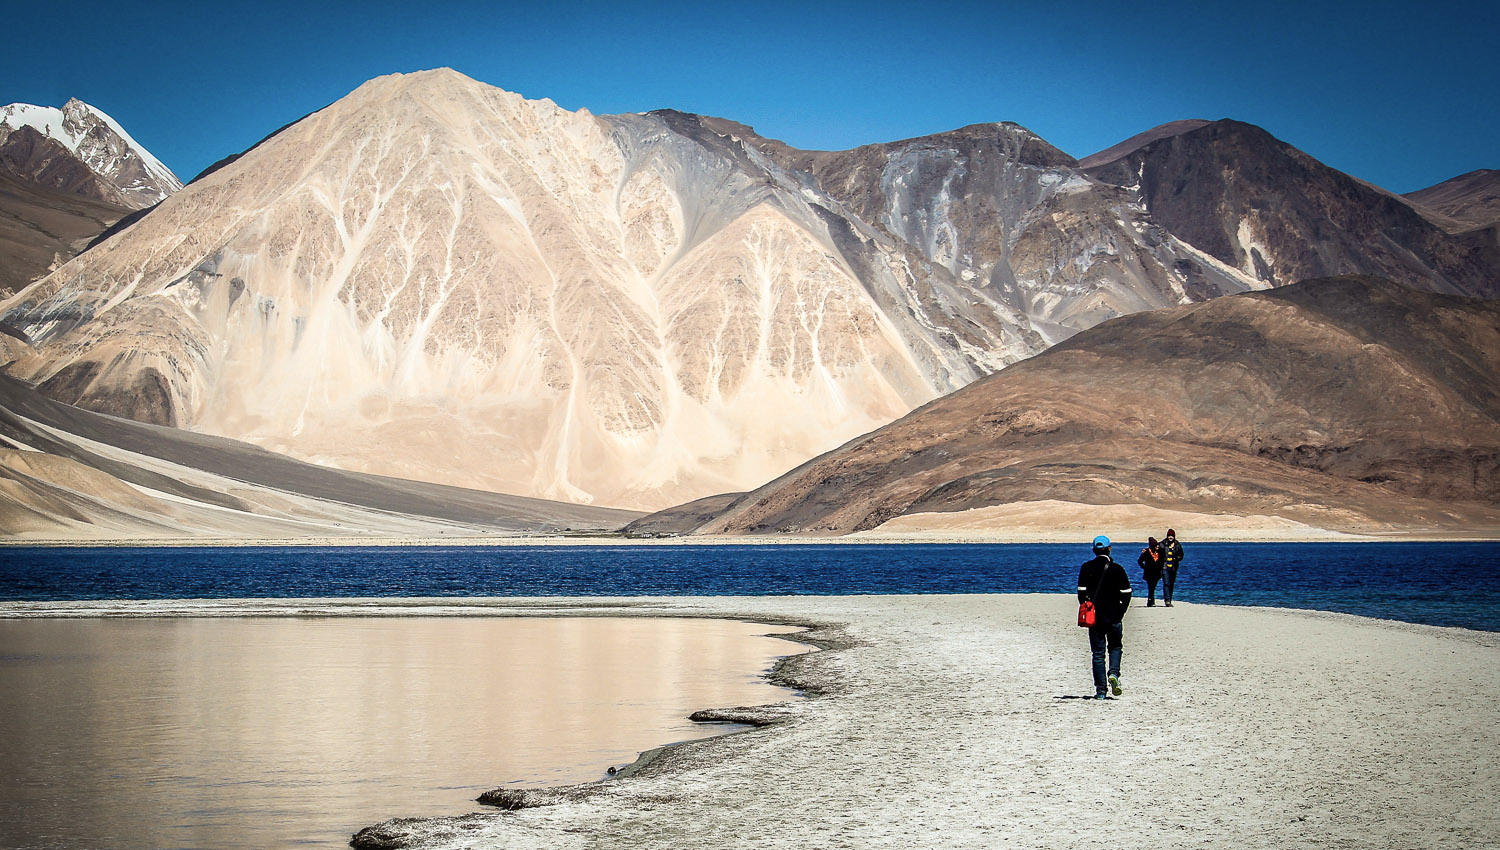 Spectacular mountain and lake scenery in Ladakh. Image:     Snehaz